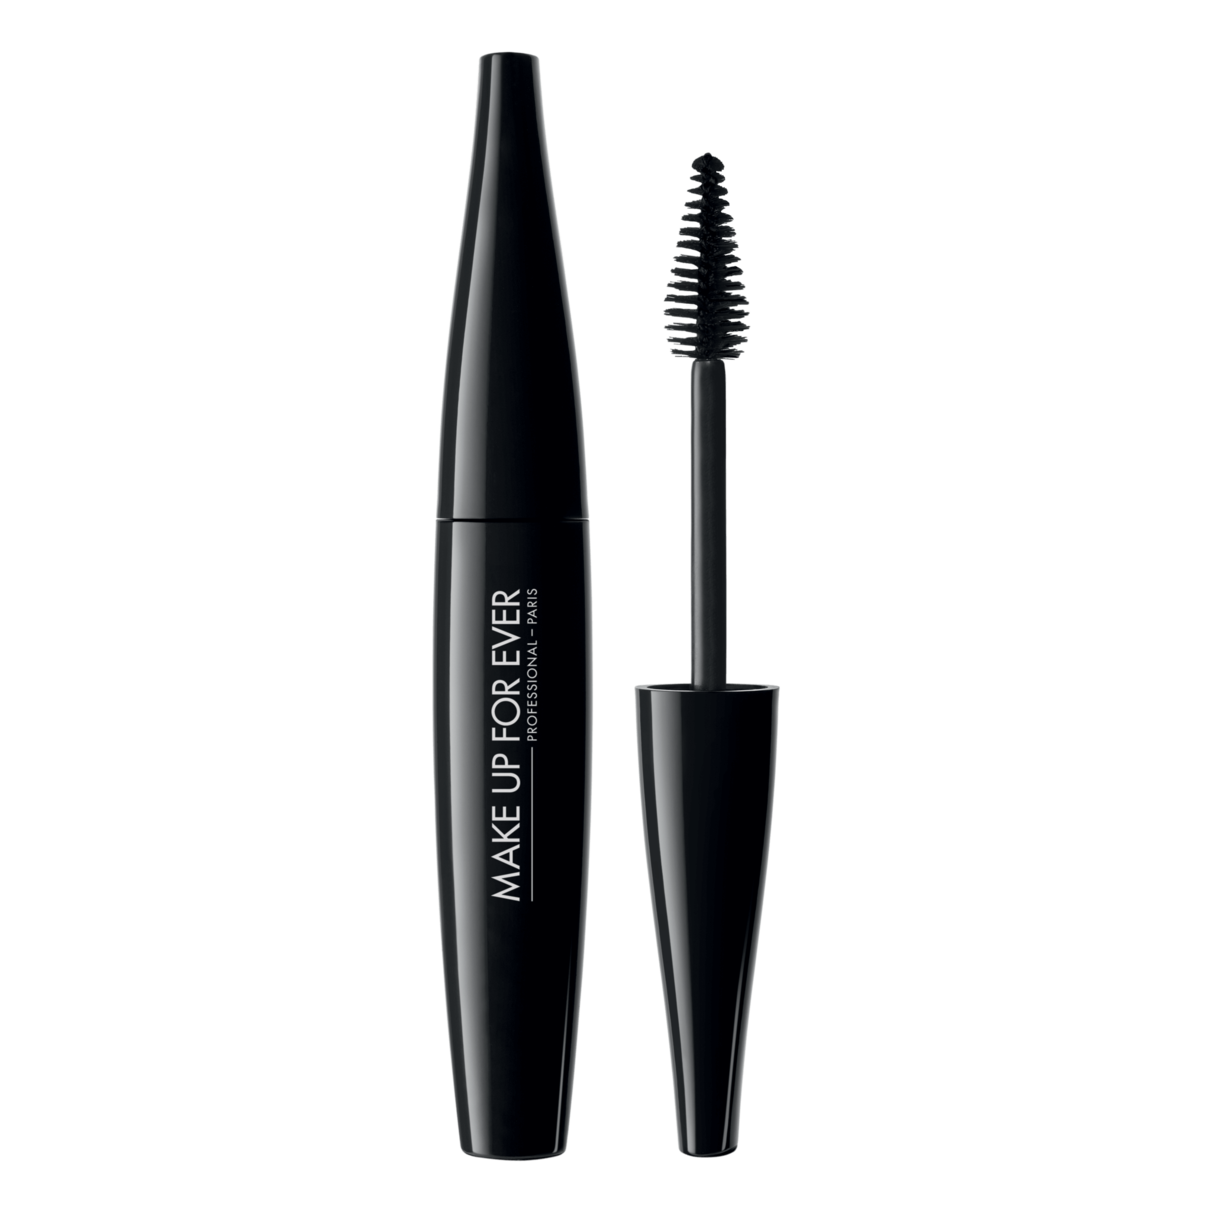 MAKE UP FOR EVER Smoky Extravagant Extravagant Volume, Up Close Precision Mascara